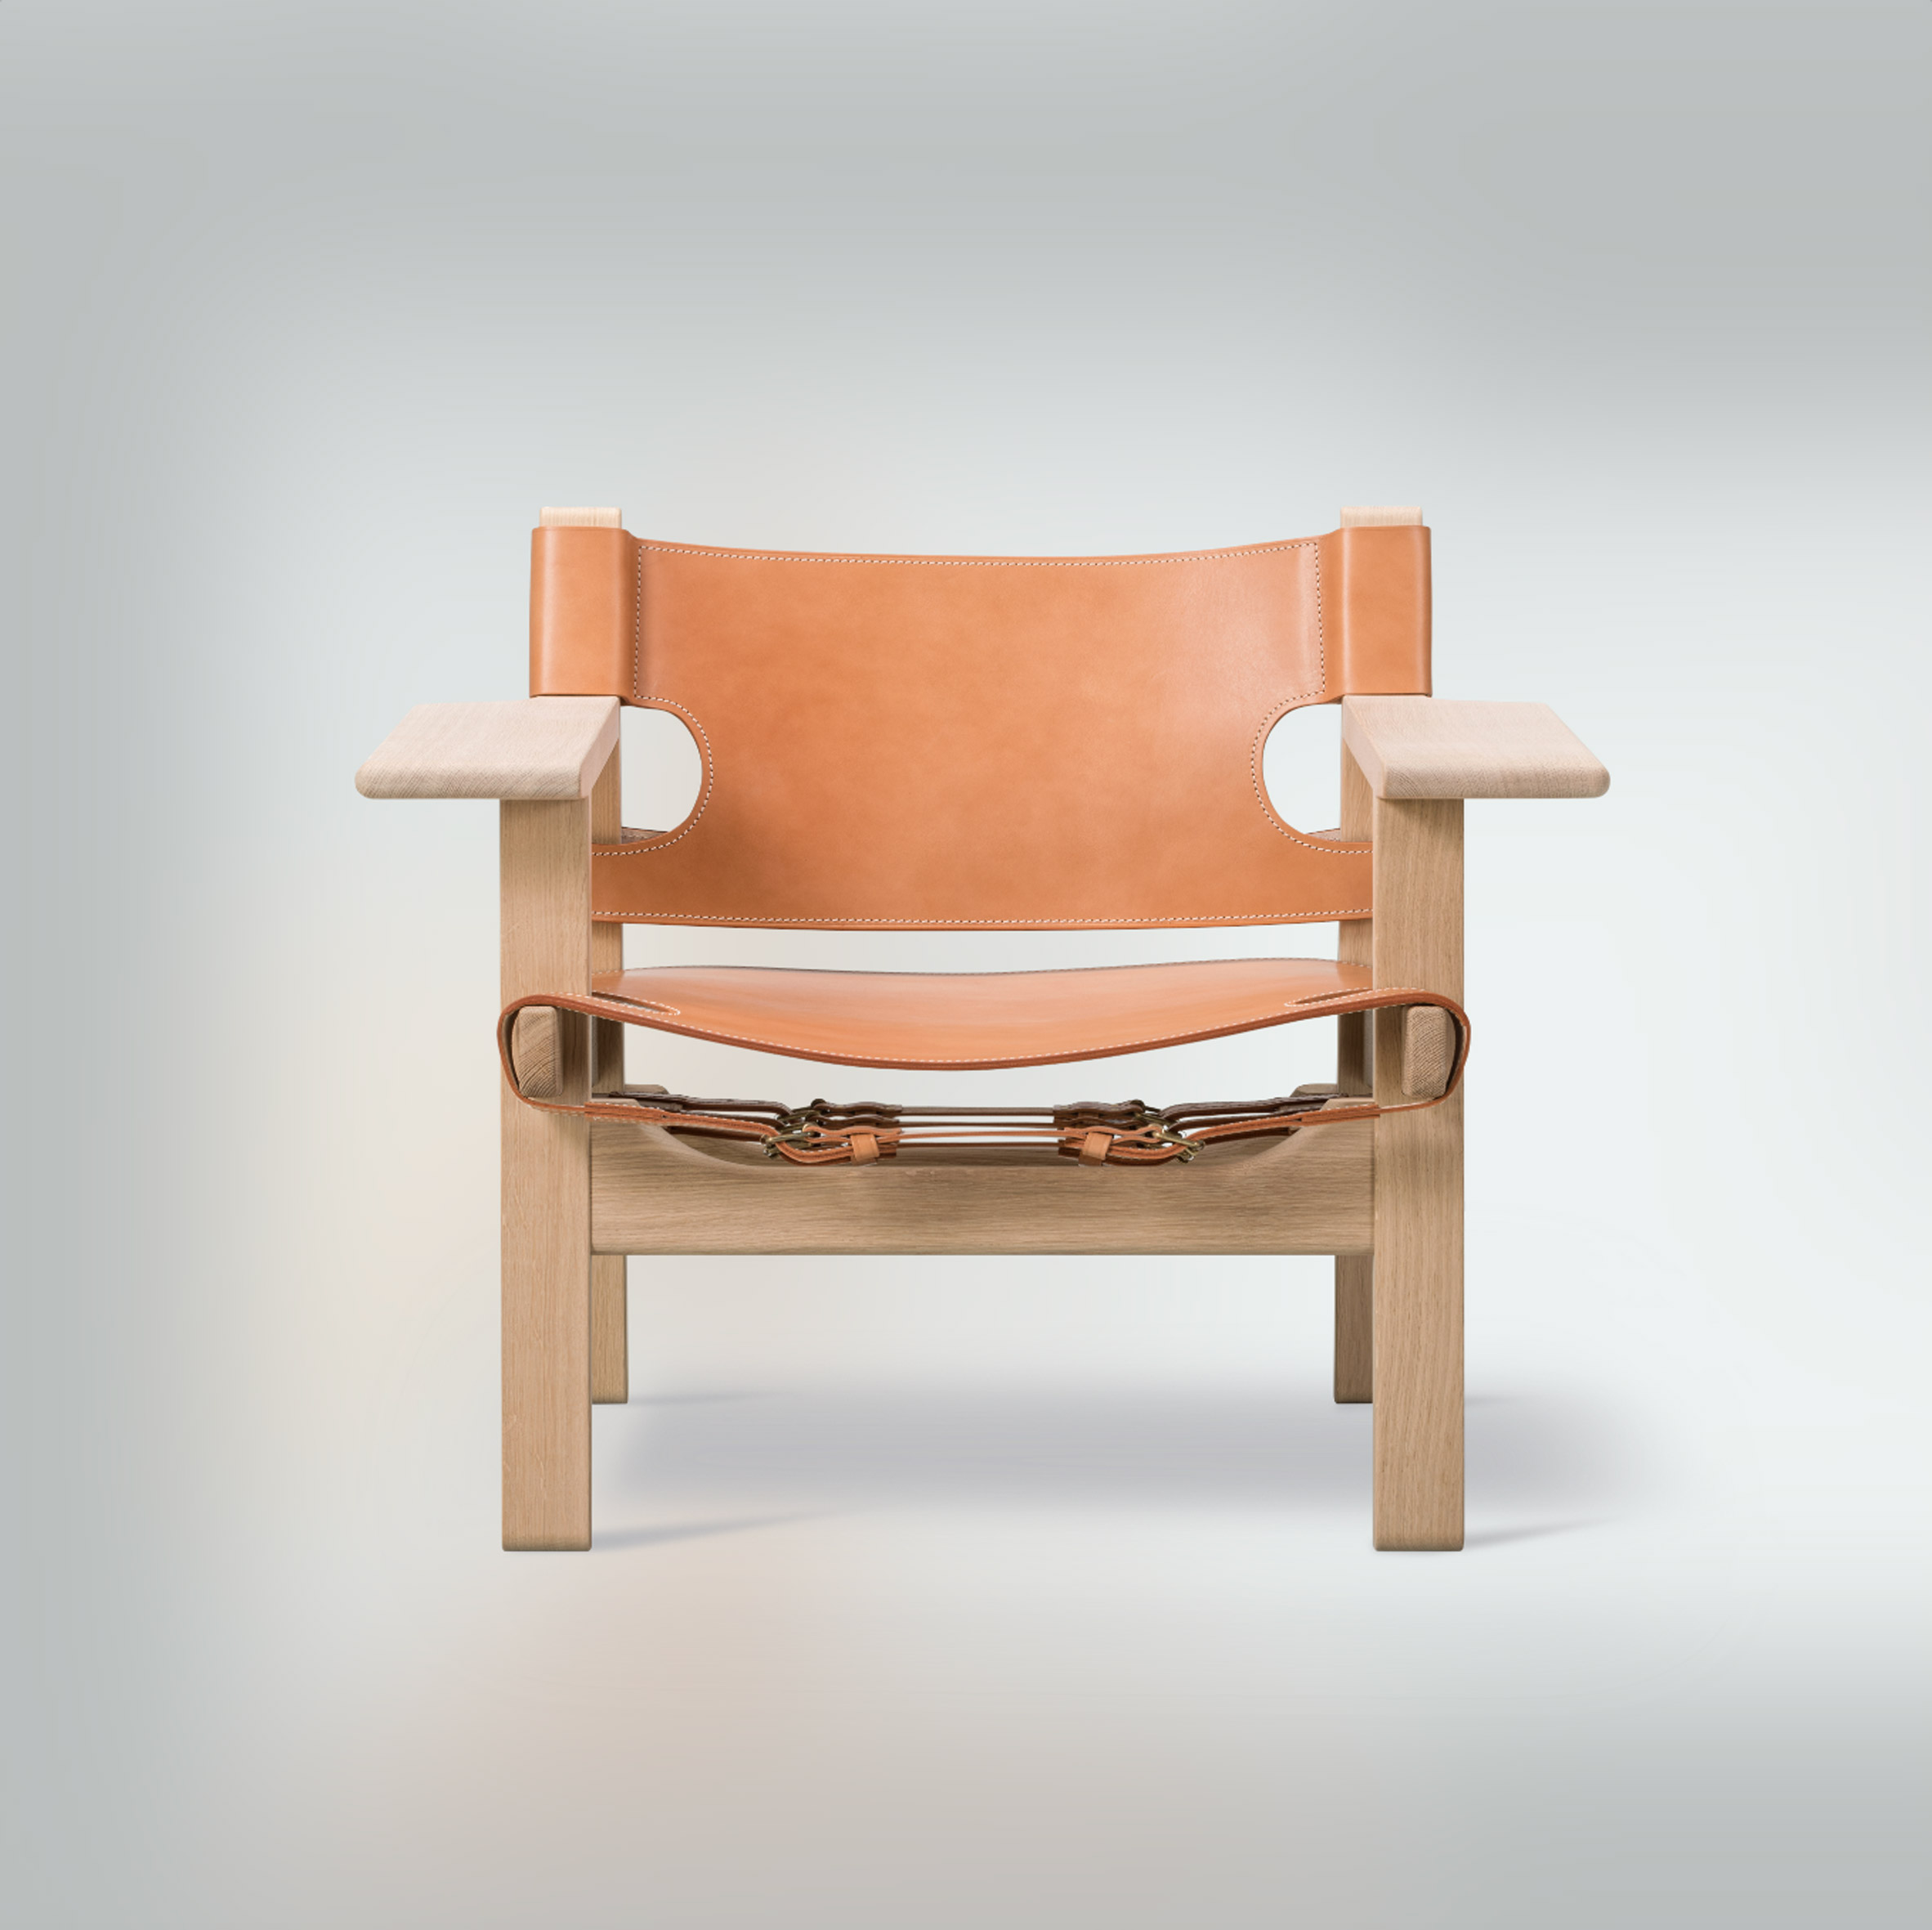 Front view of the Spanish Chair by Børge Mogensen for Danish brand Fredericia